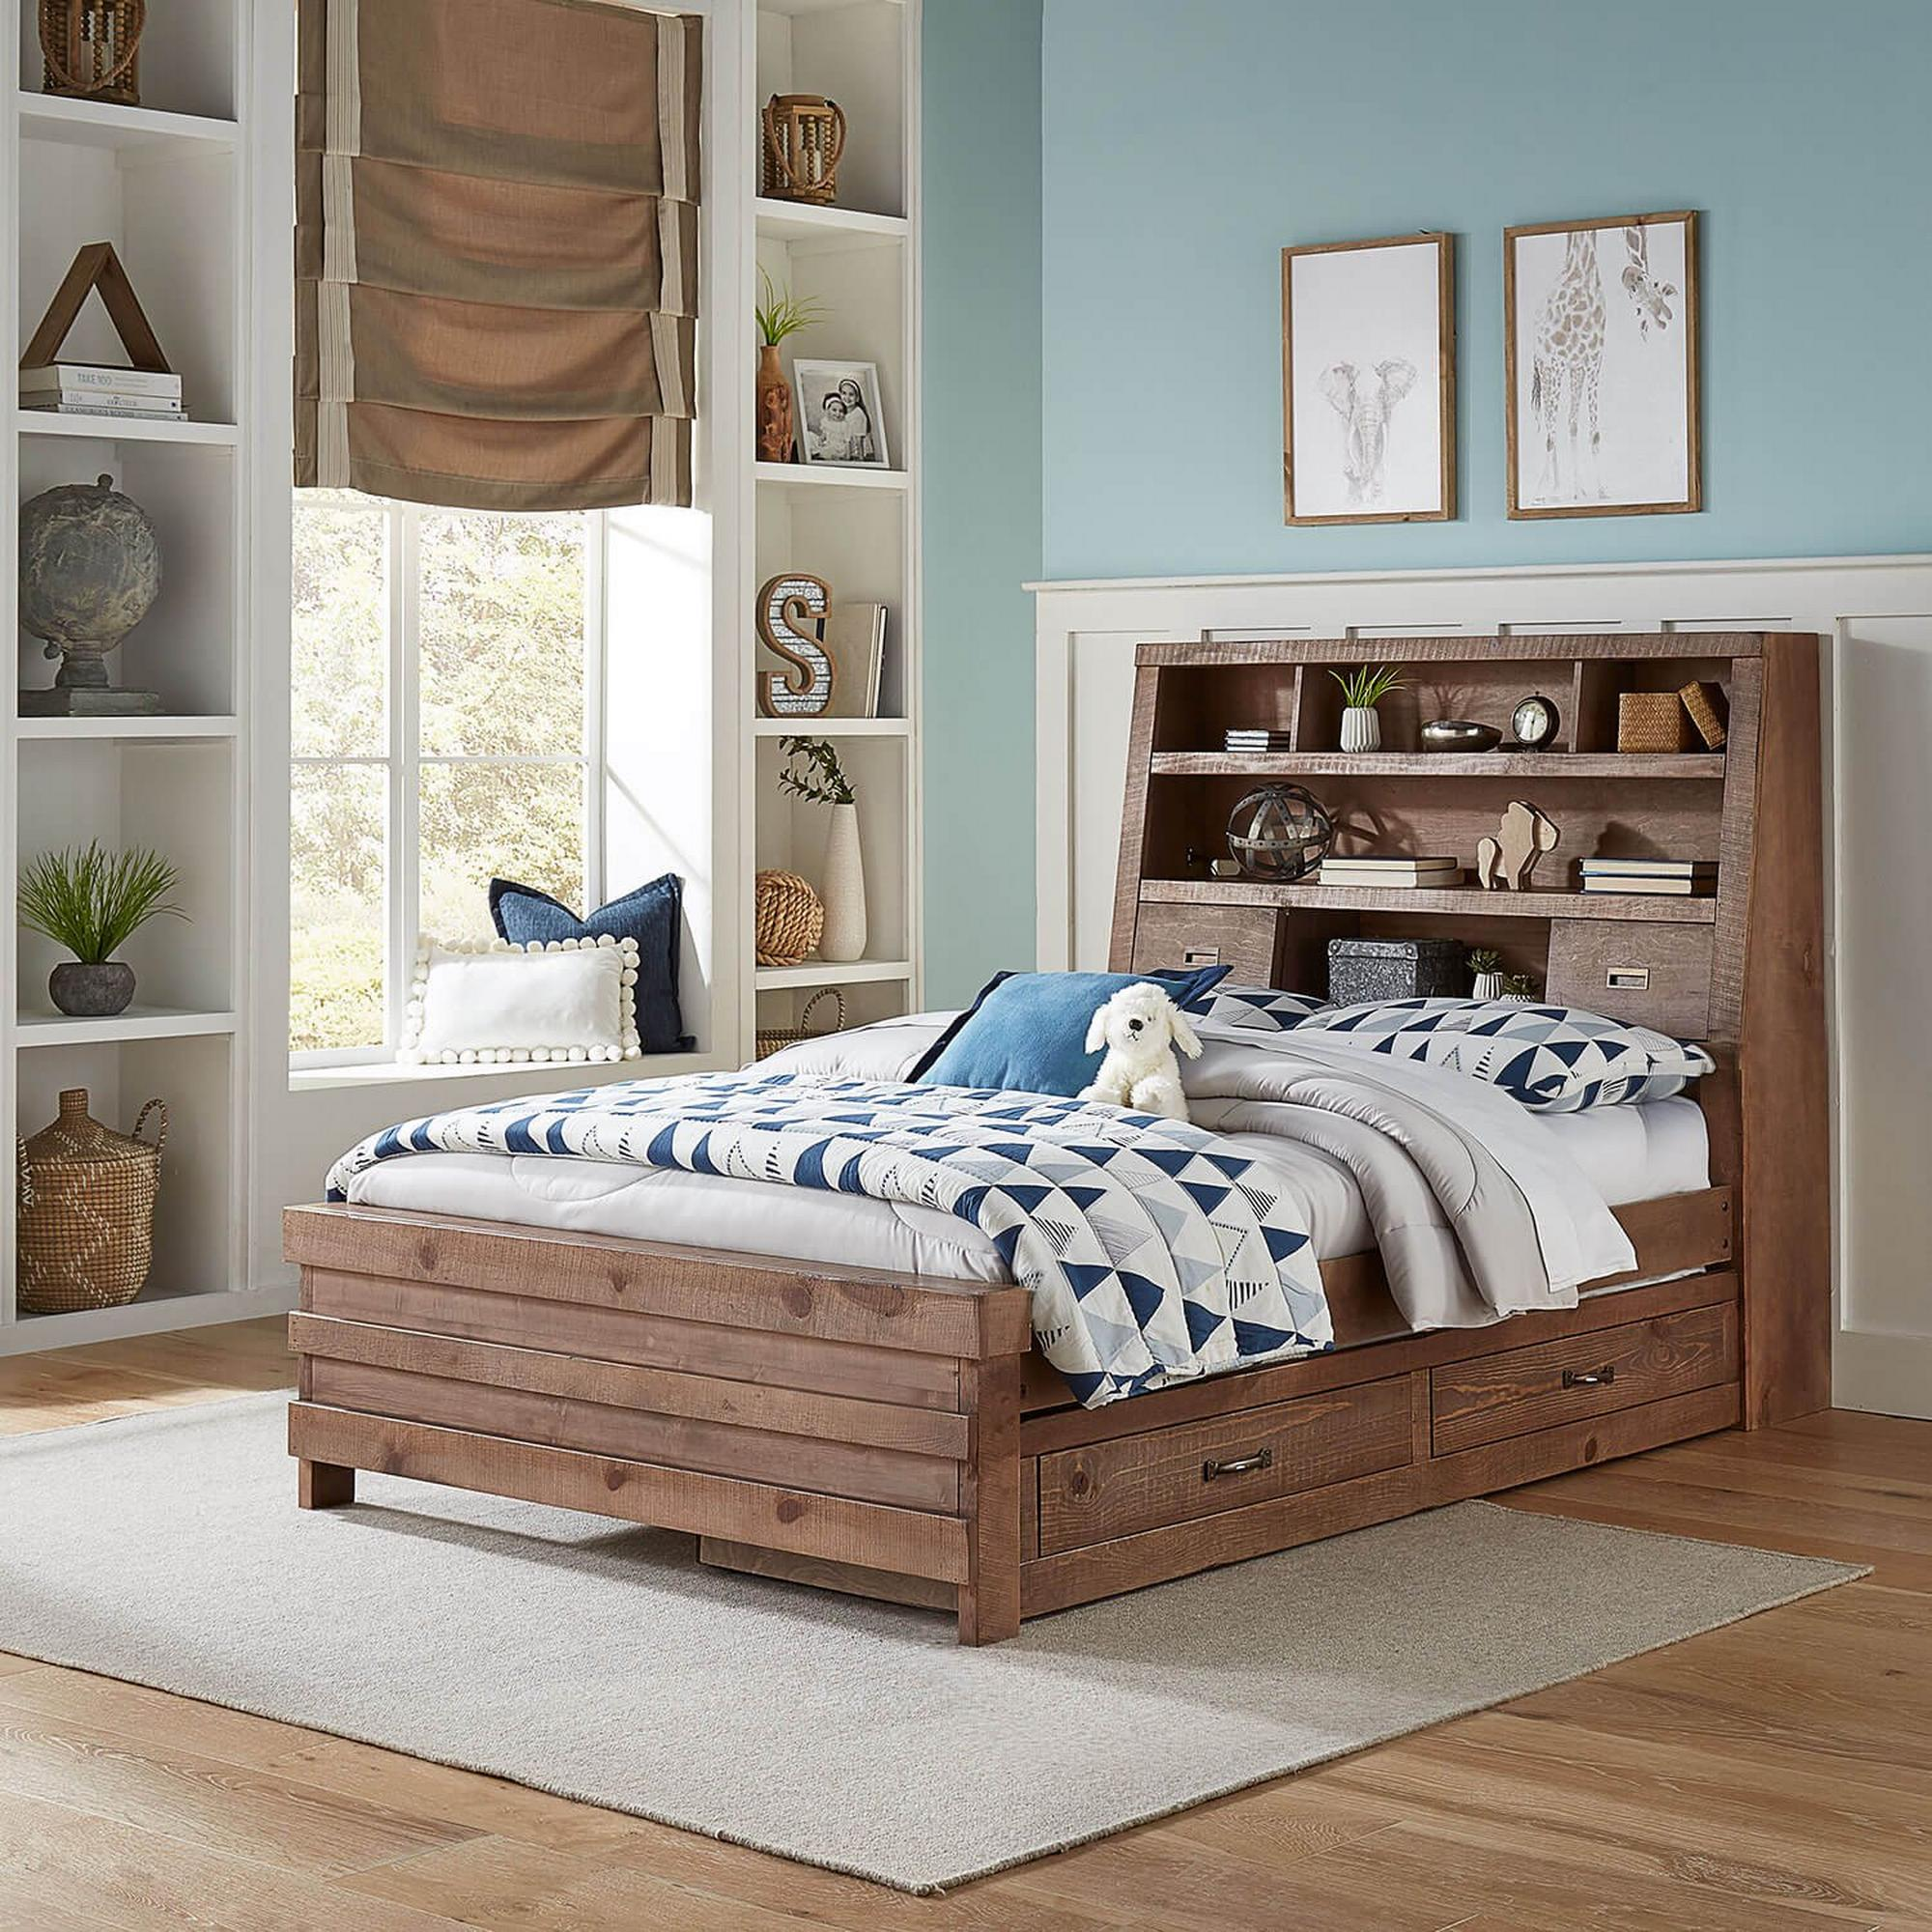 Rent To Own Oak Furniture West 8 Piece Montana Full Captain S Bed With Mattresses And Trundle At Aaron S Today